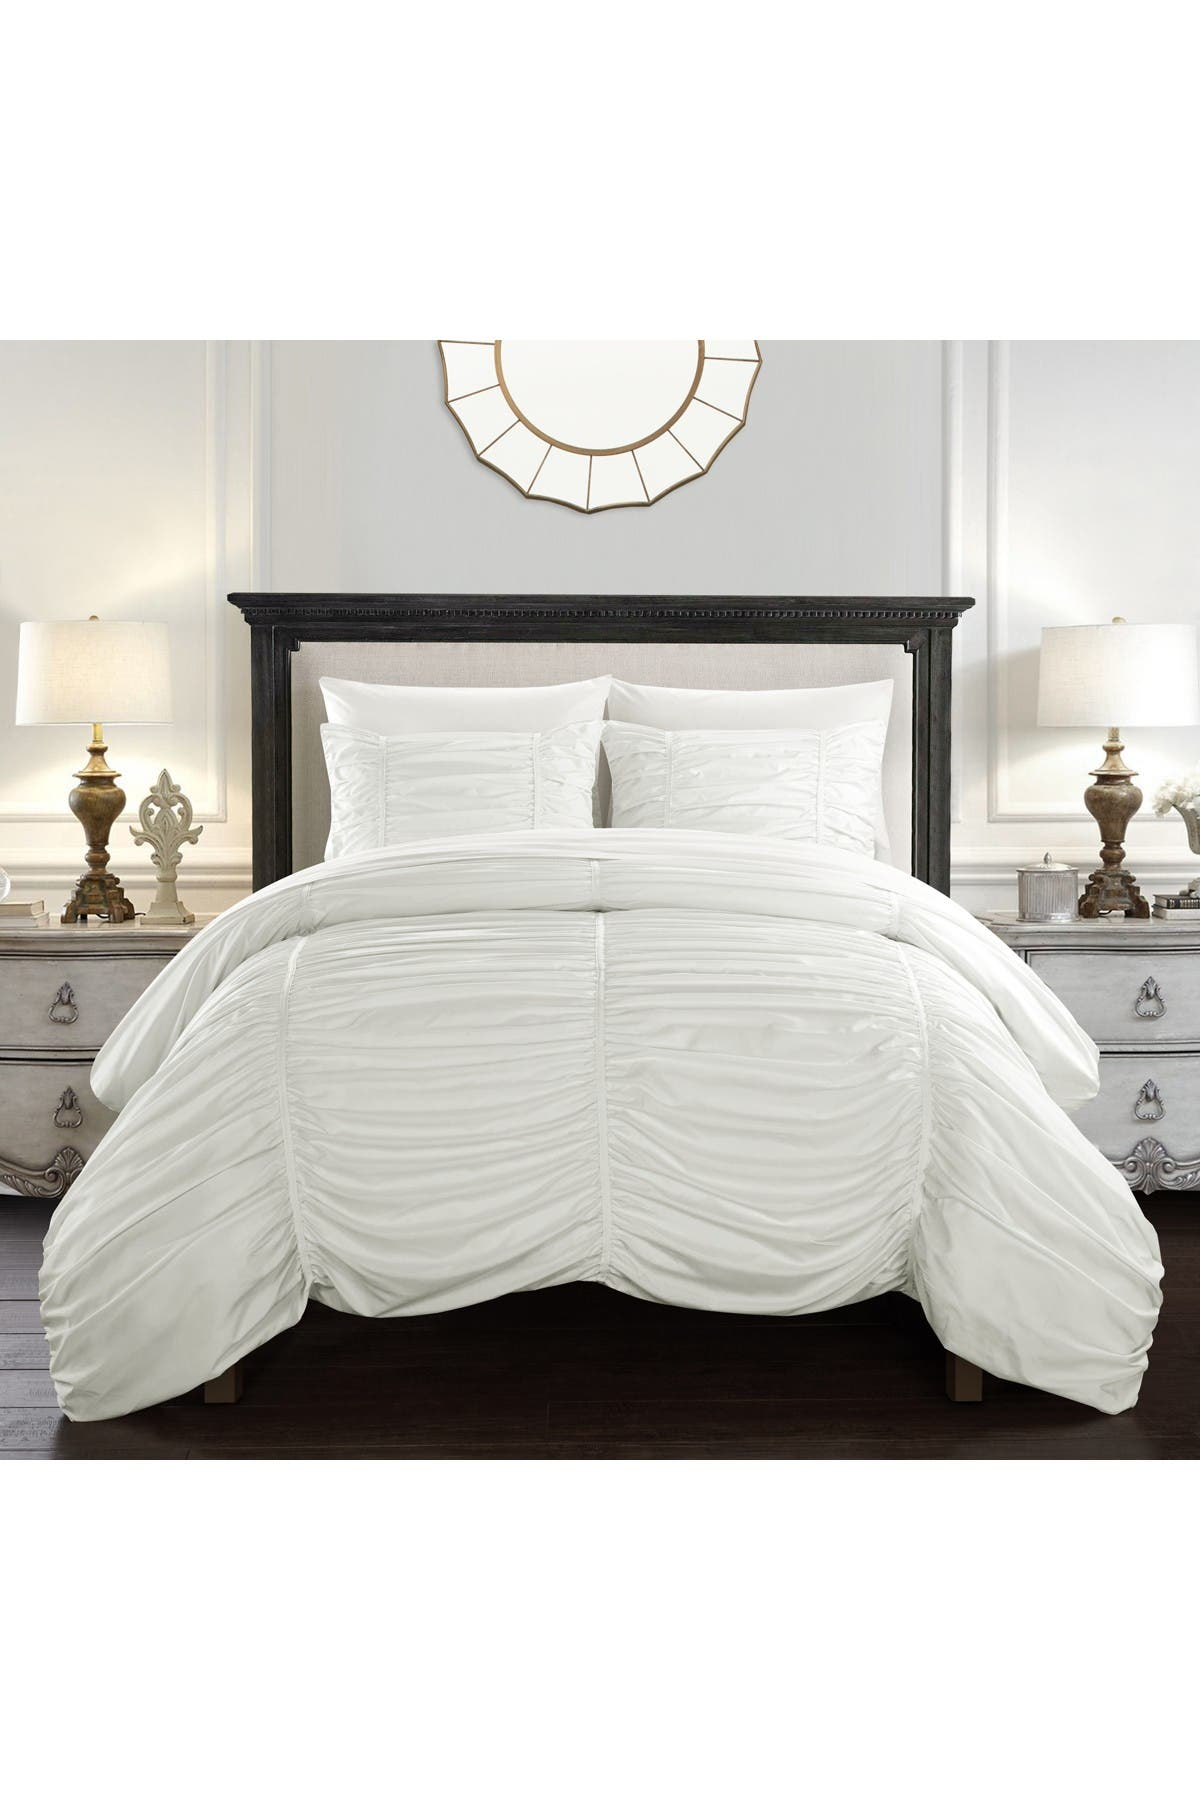 Image of Chic Home Bedding Kleia Contemporary Striped Ruched Ruffled Striped Pattern Design Queen 3-Piece Set - White